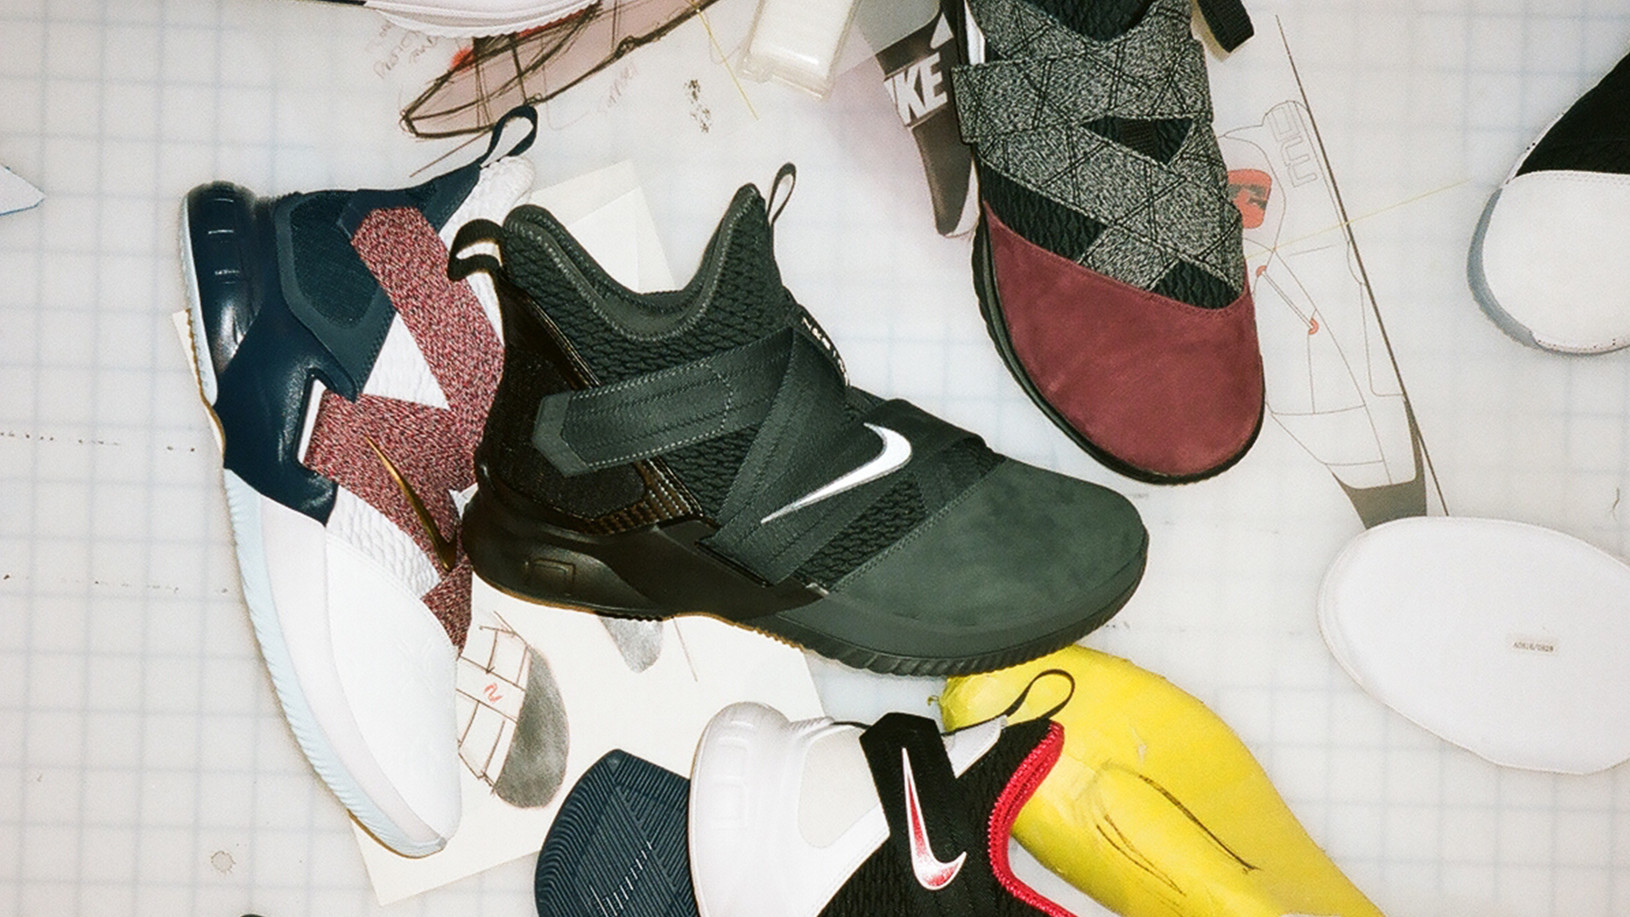 a89f2ad113c A Look at the Design of the Nike LeBron Soldier 12